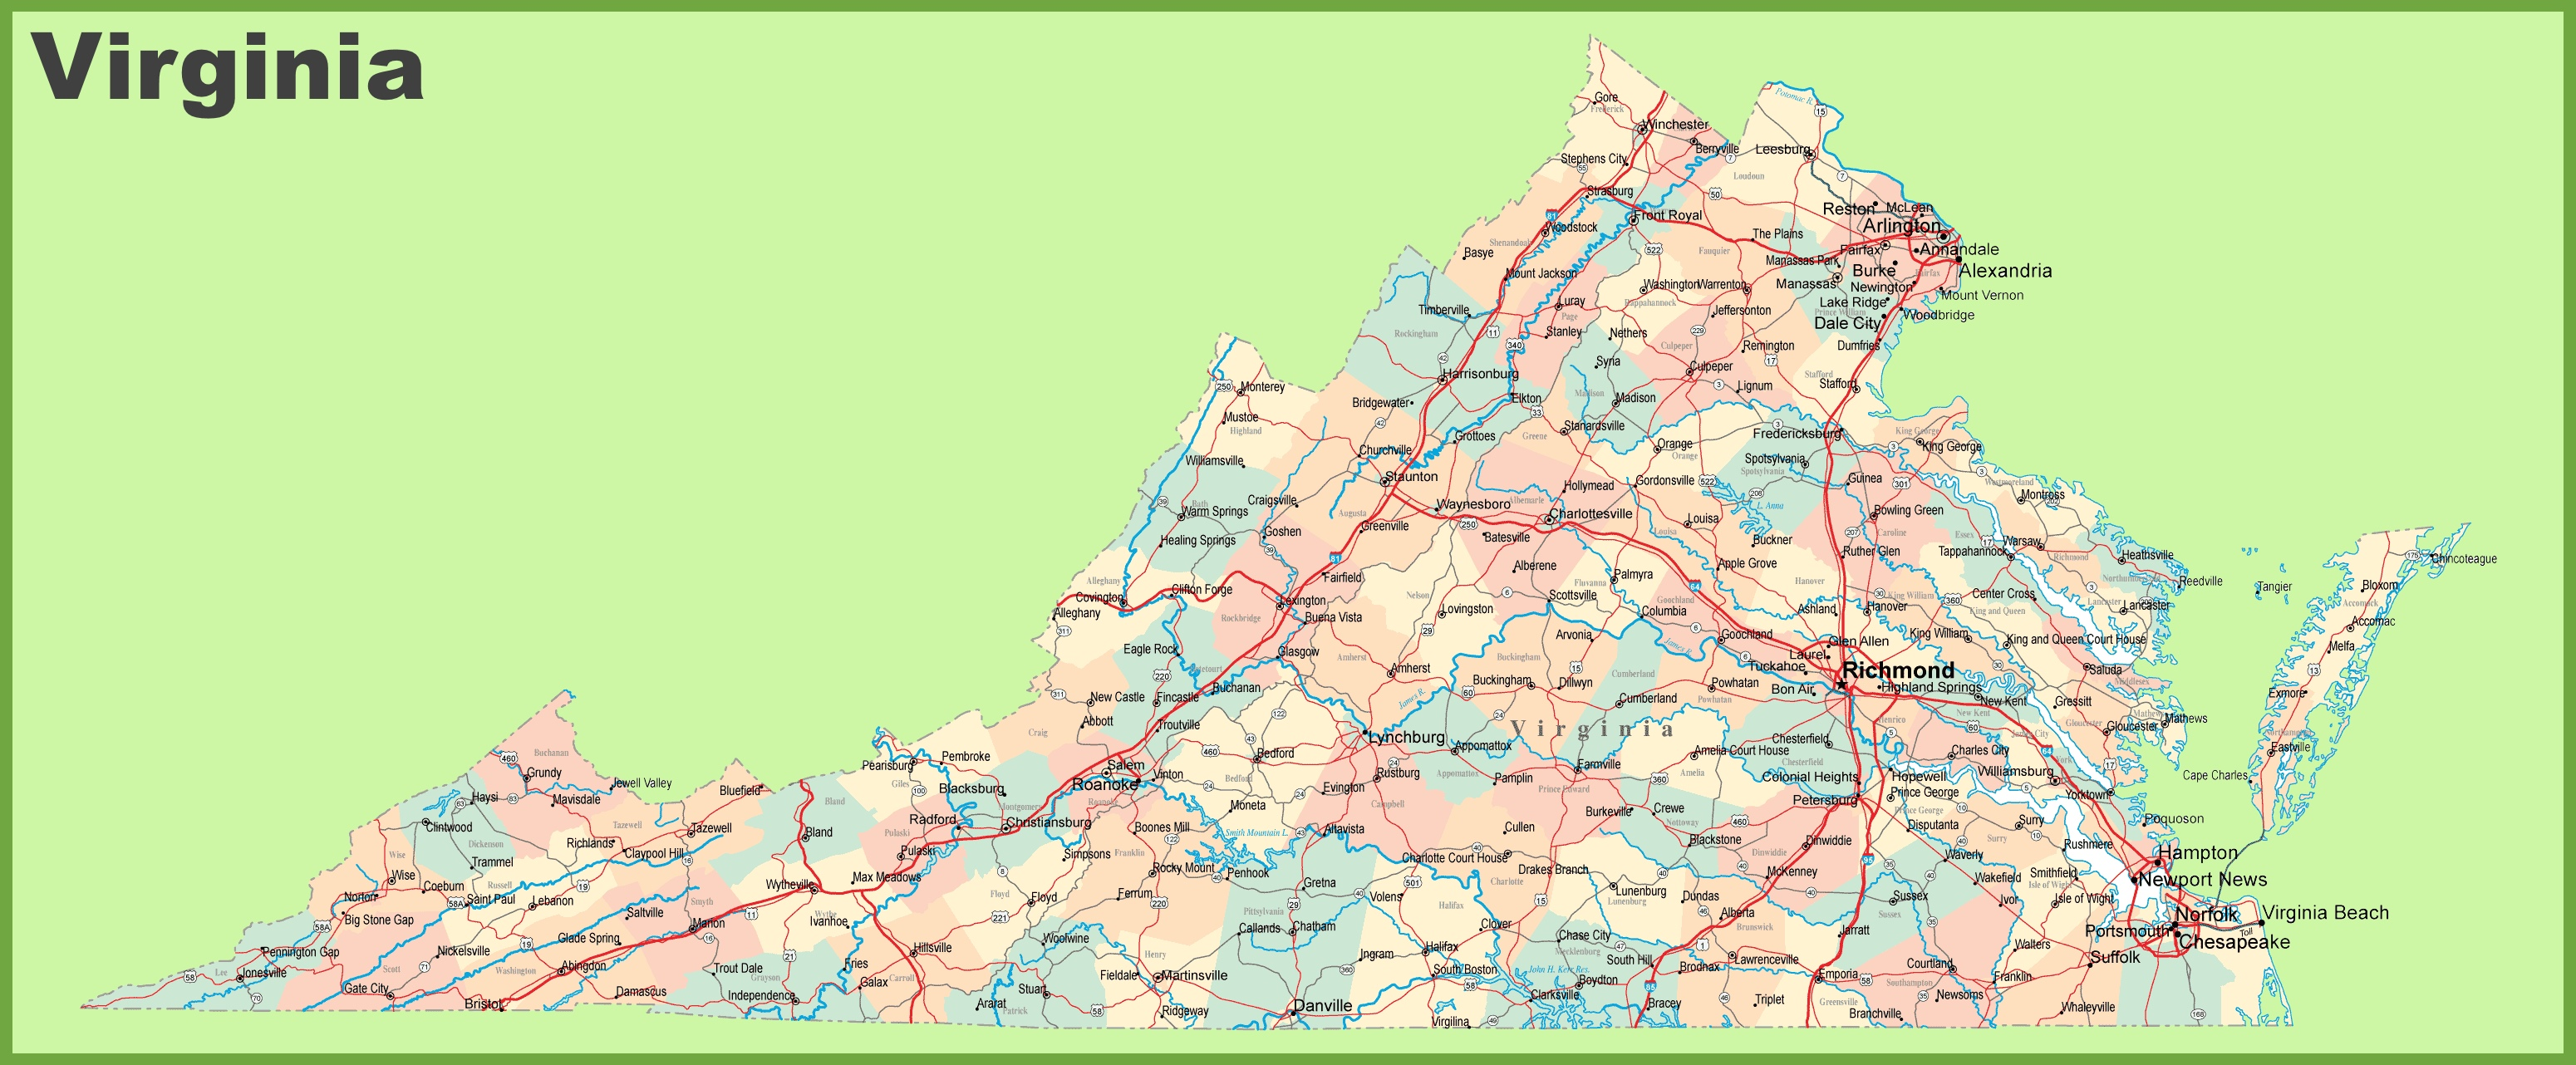 Road Map Of Virginia With Cities - Road map virginia